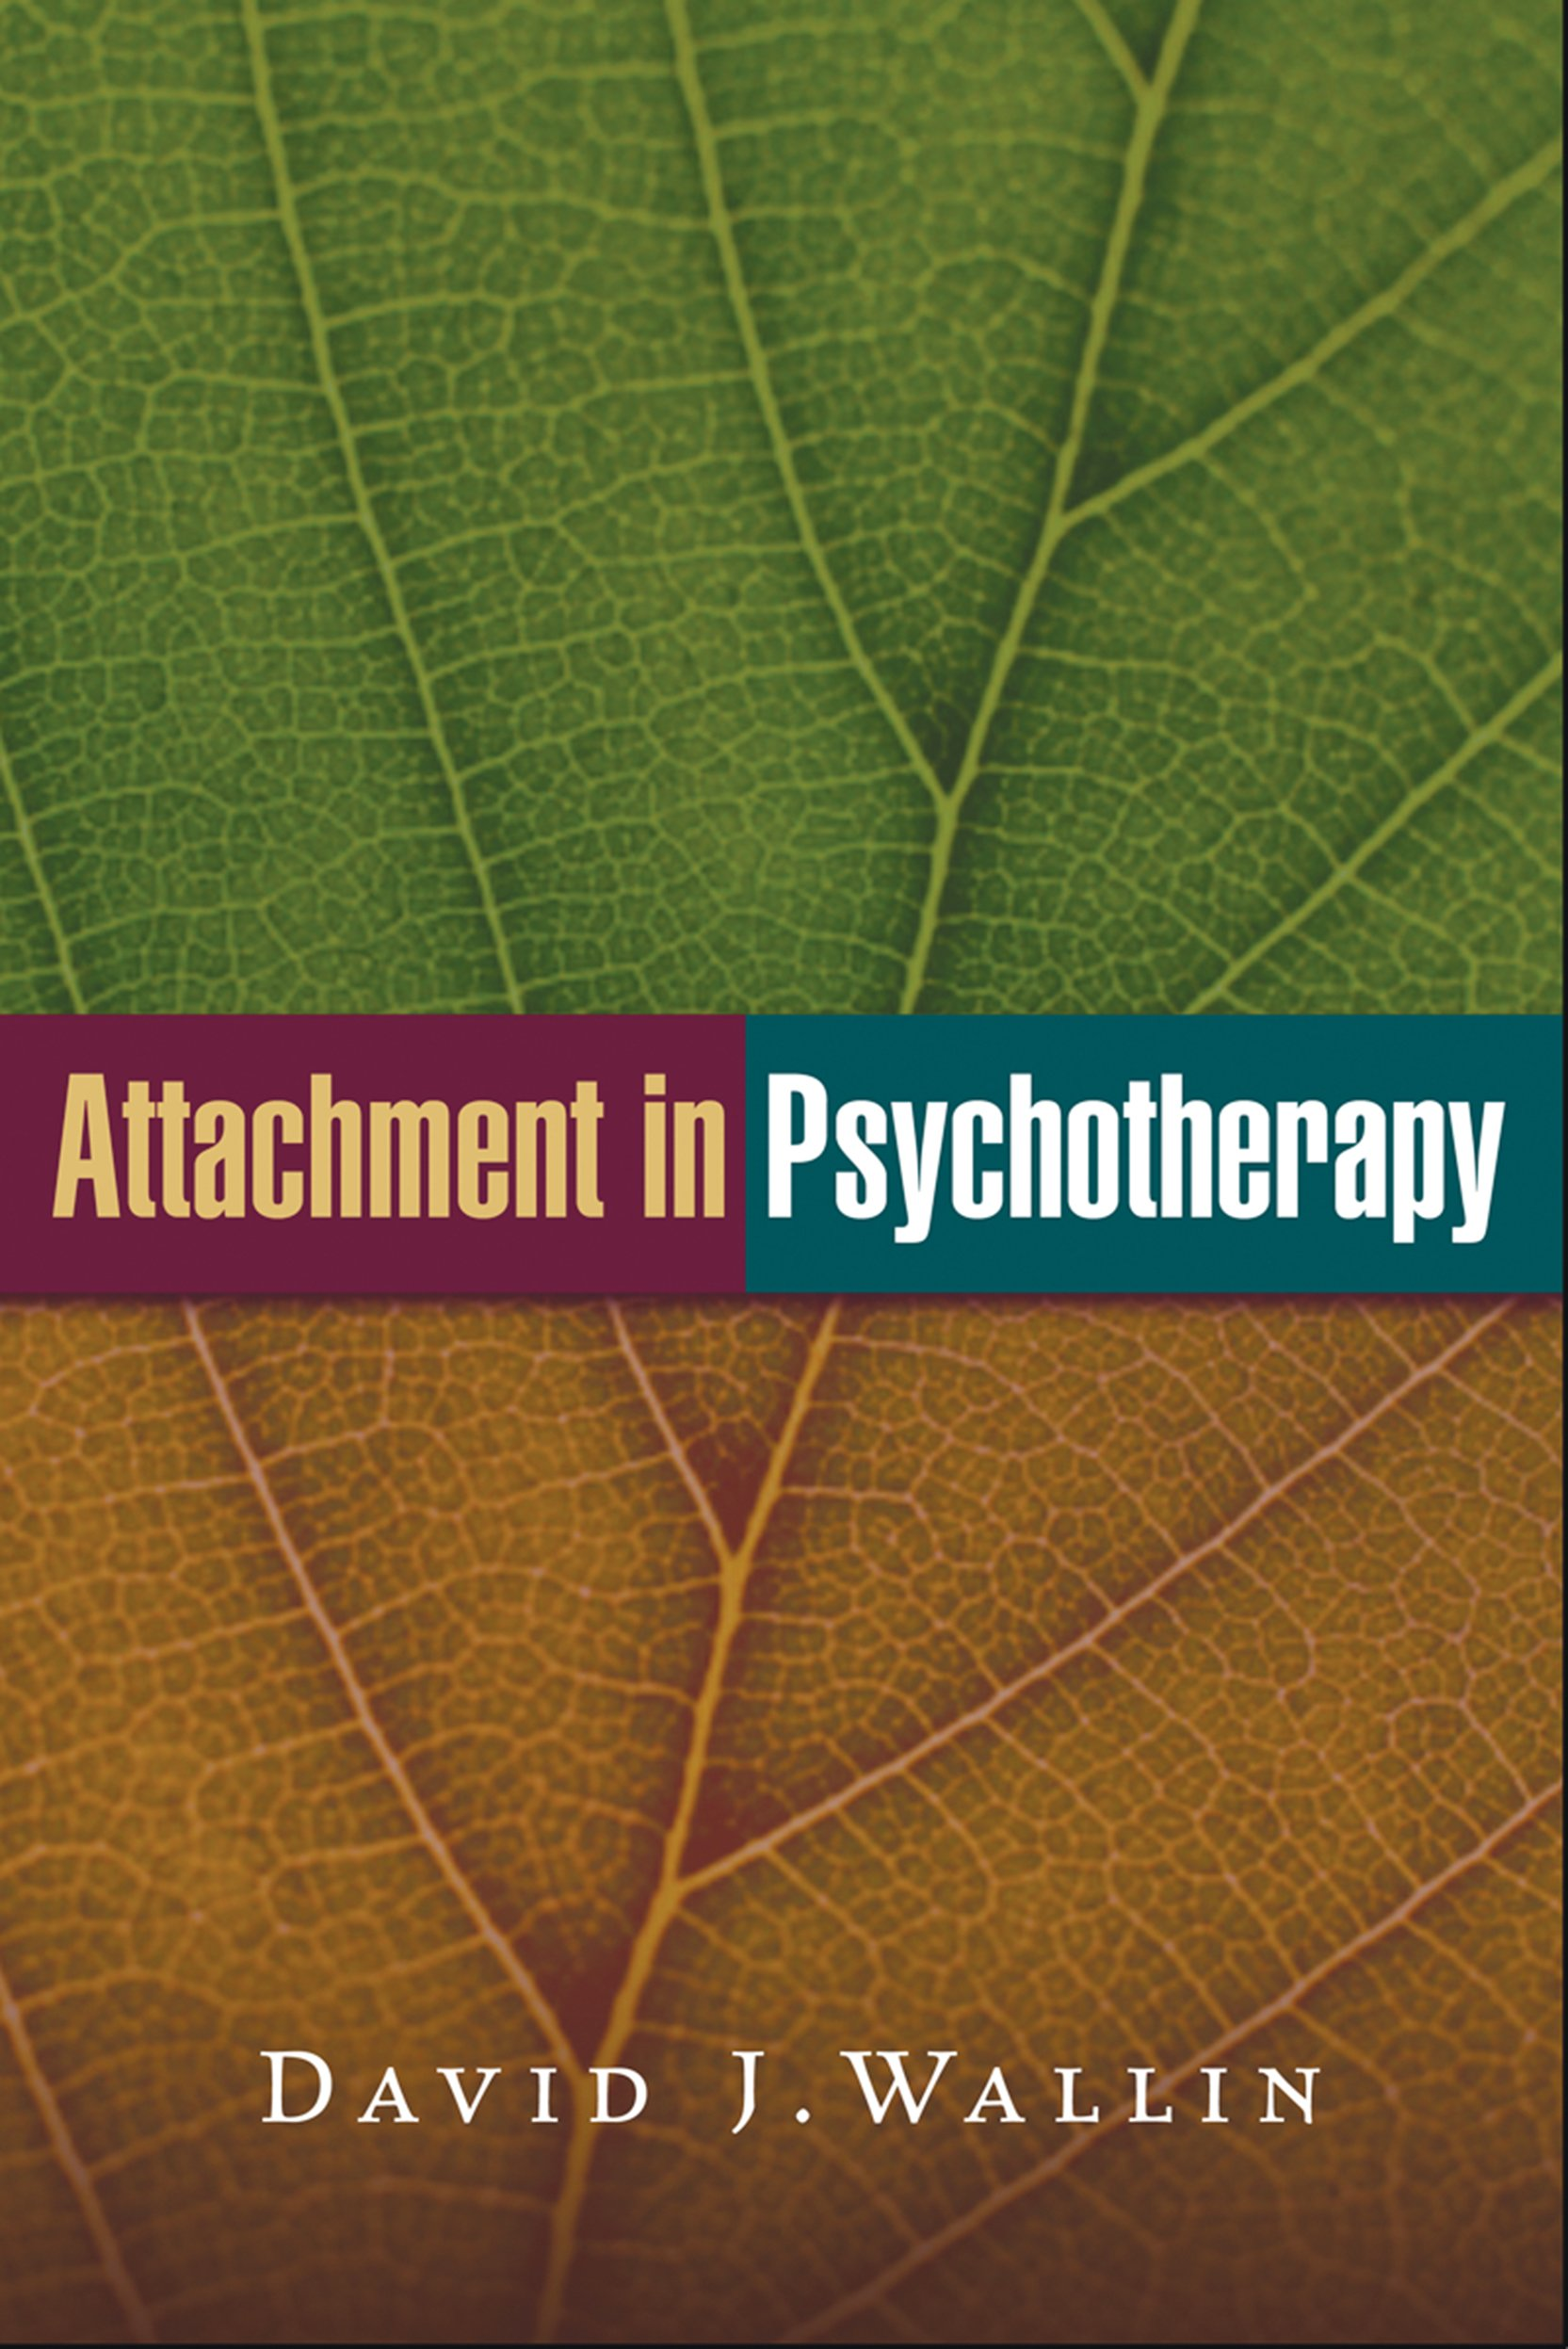 Image result for cover of attachment in psychotherapy